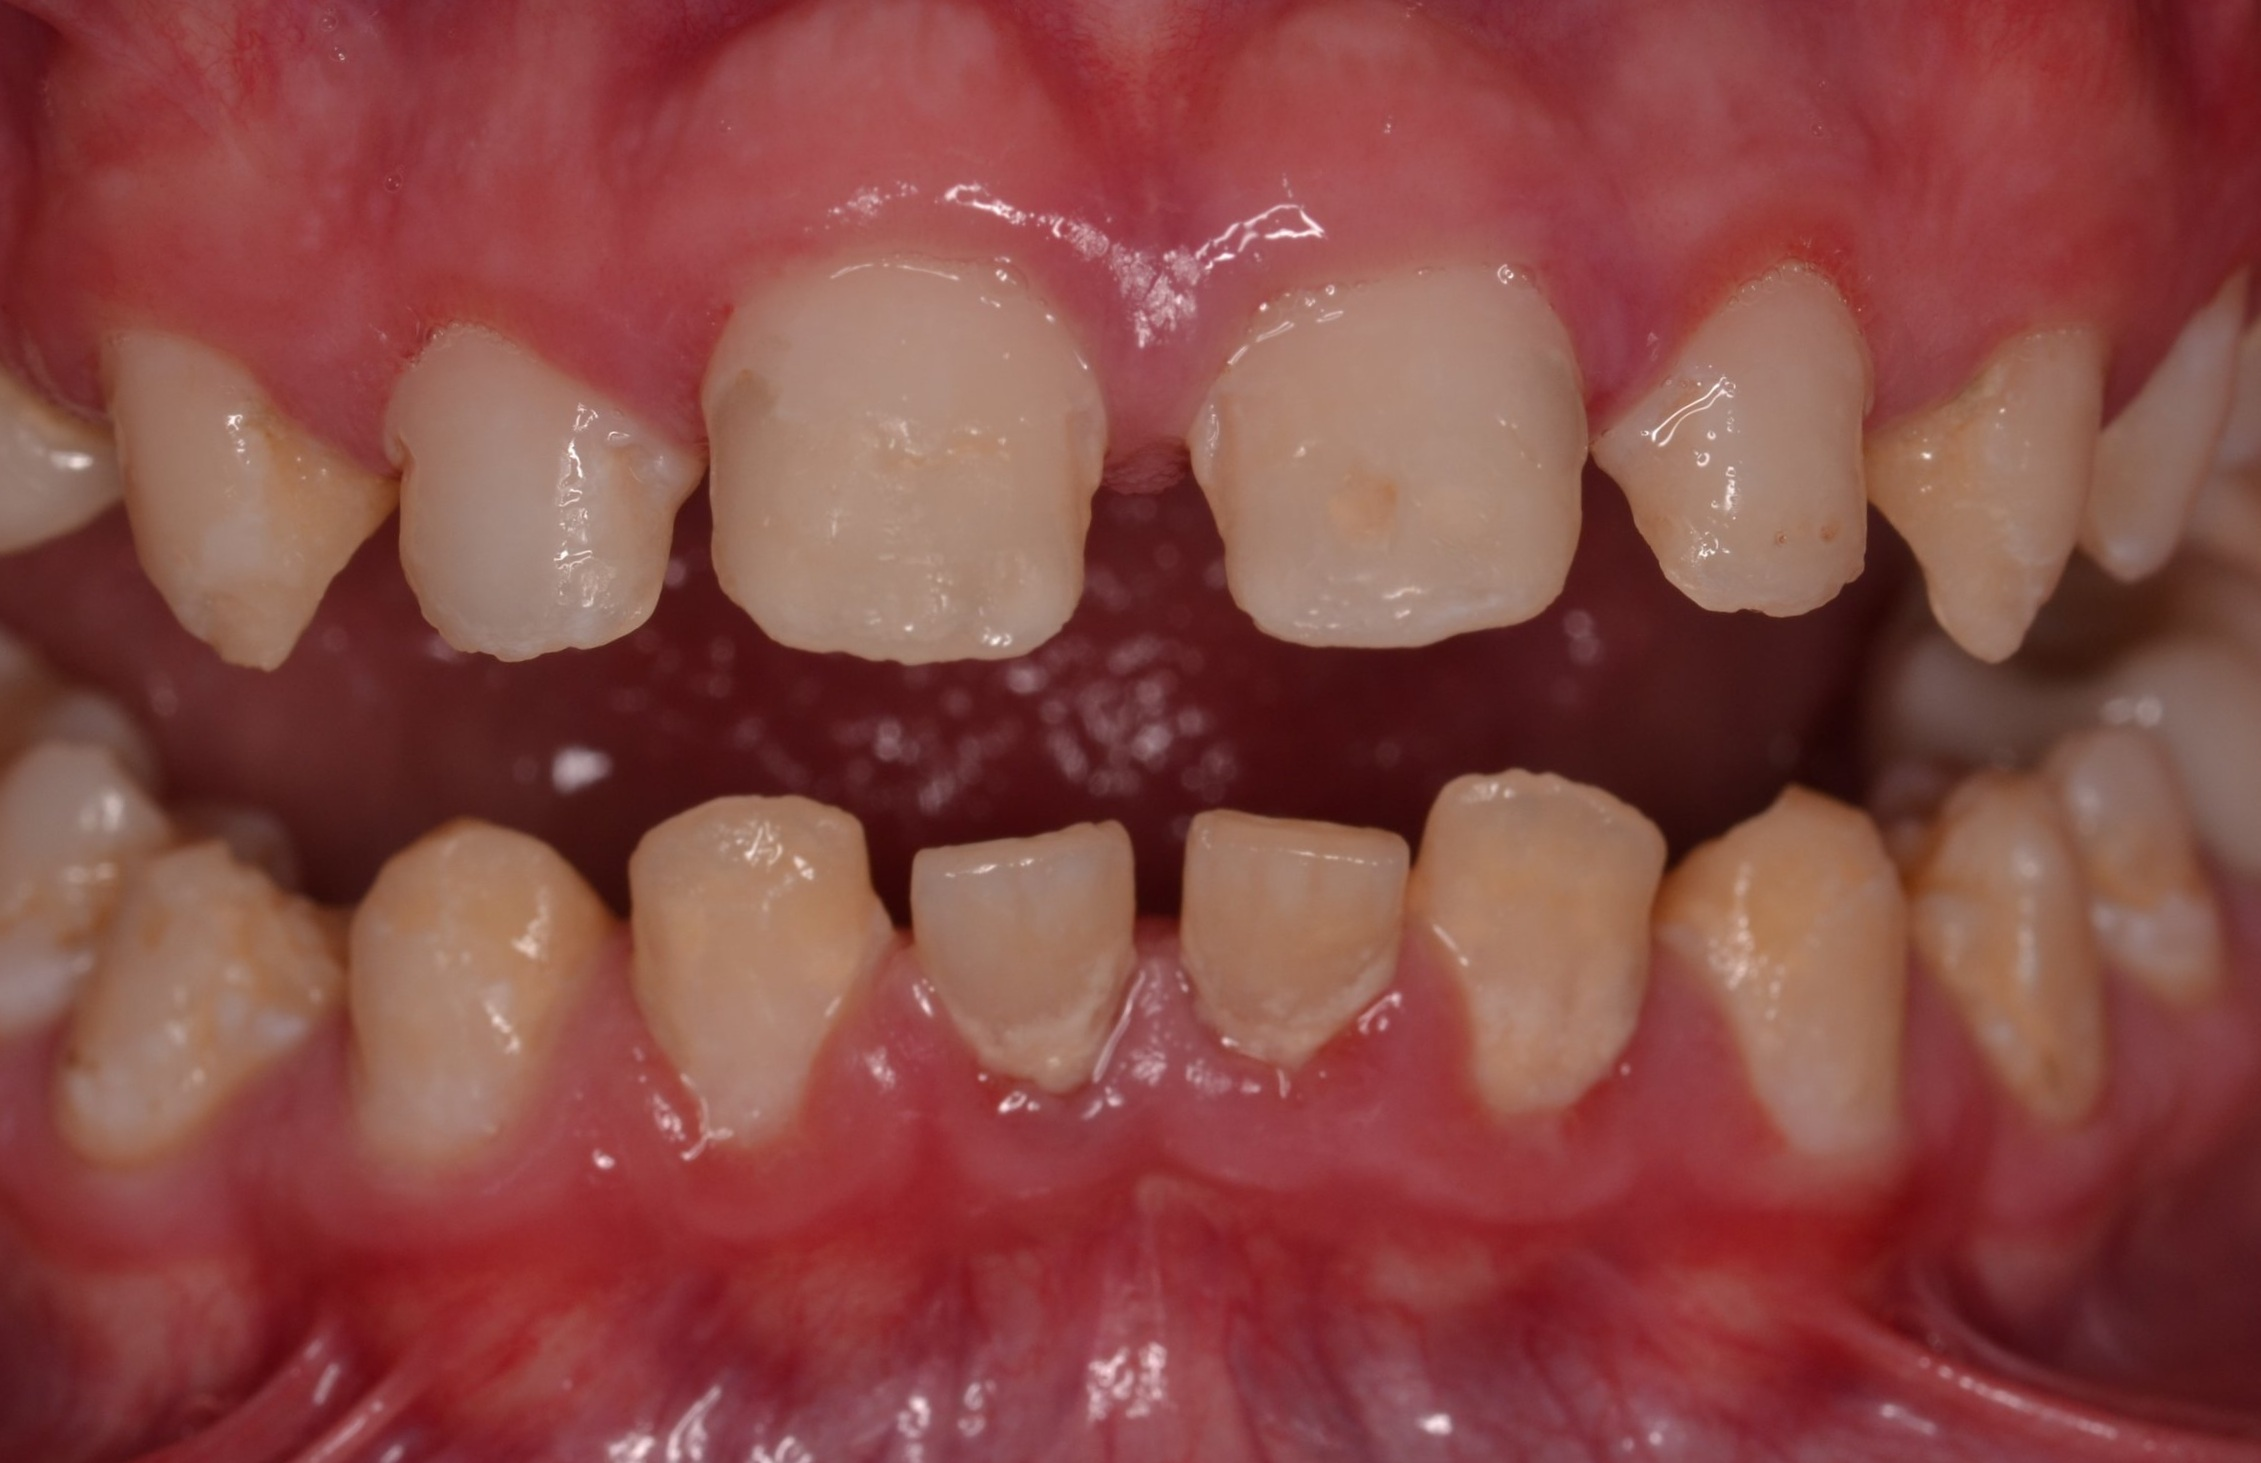 Figure 1c; A retracted (1:3 magnification) view of the patient's dentition pre-treatment